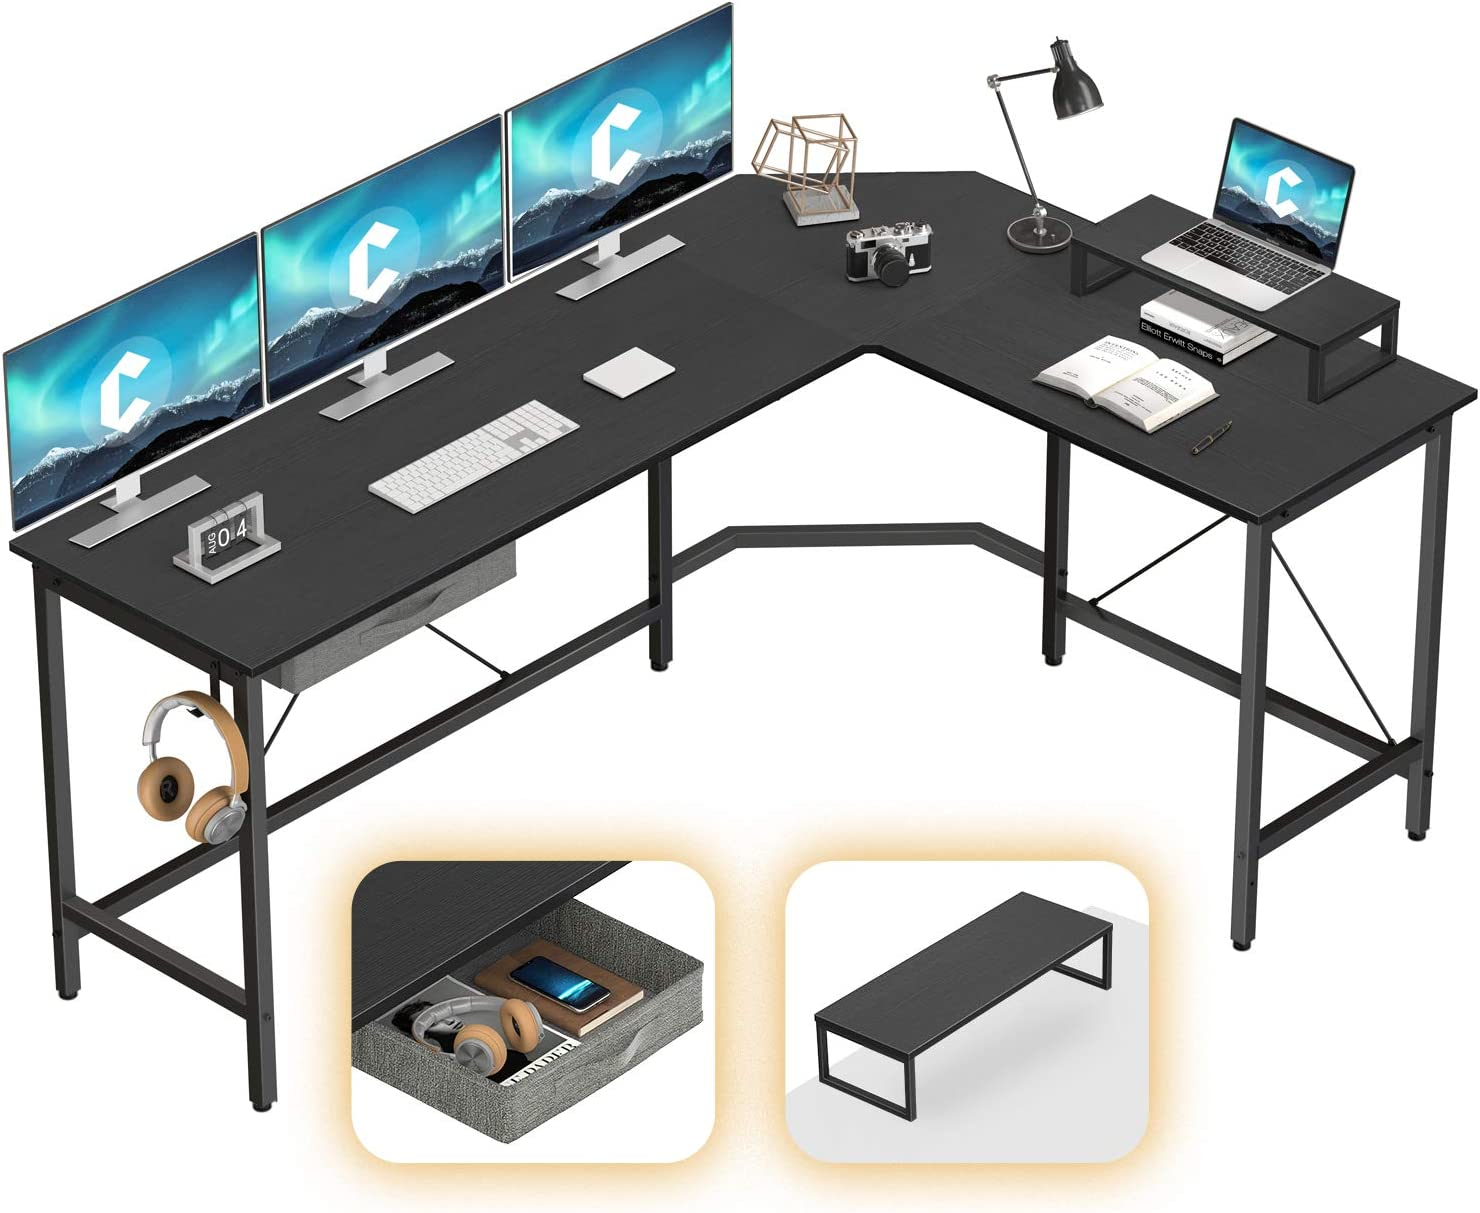 CubiCubi L-Shaped Desk Computer Corner Desk, Home Office Gaming Table, Sturdy Writing Workstation with Small Table, Space-Saving, Easy to Assemble, Black